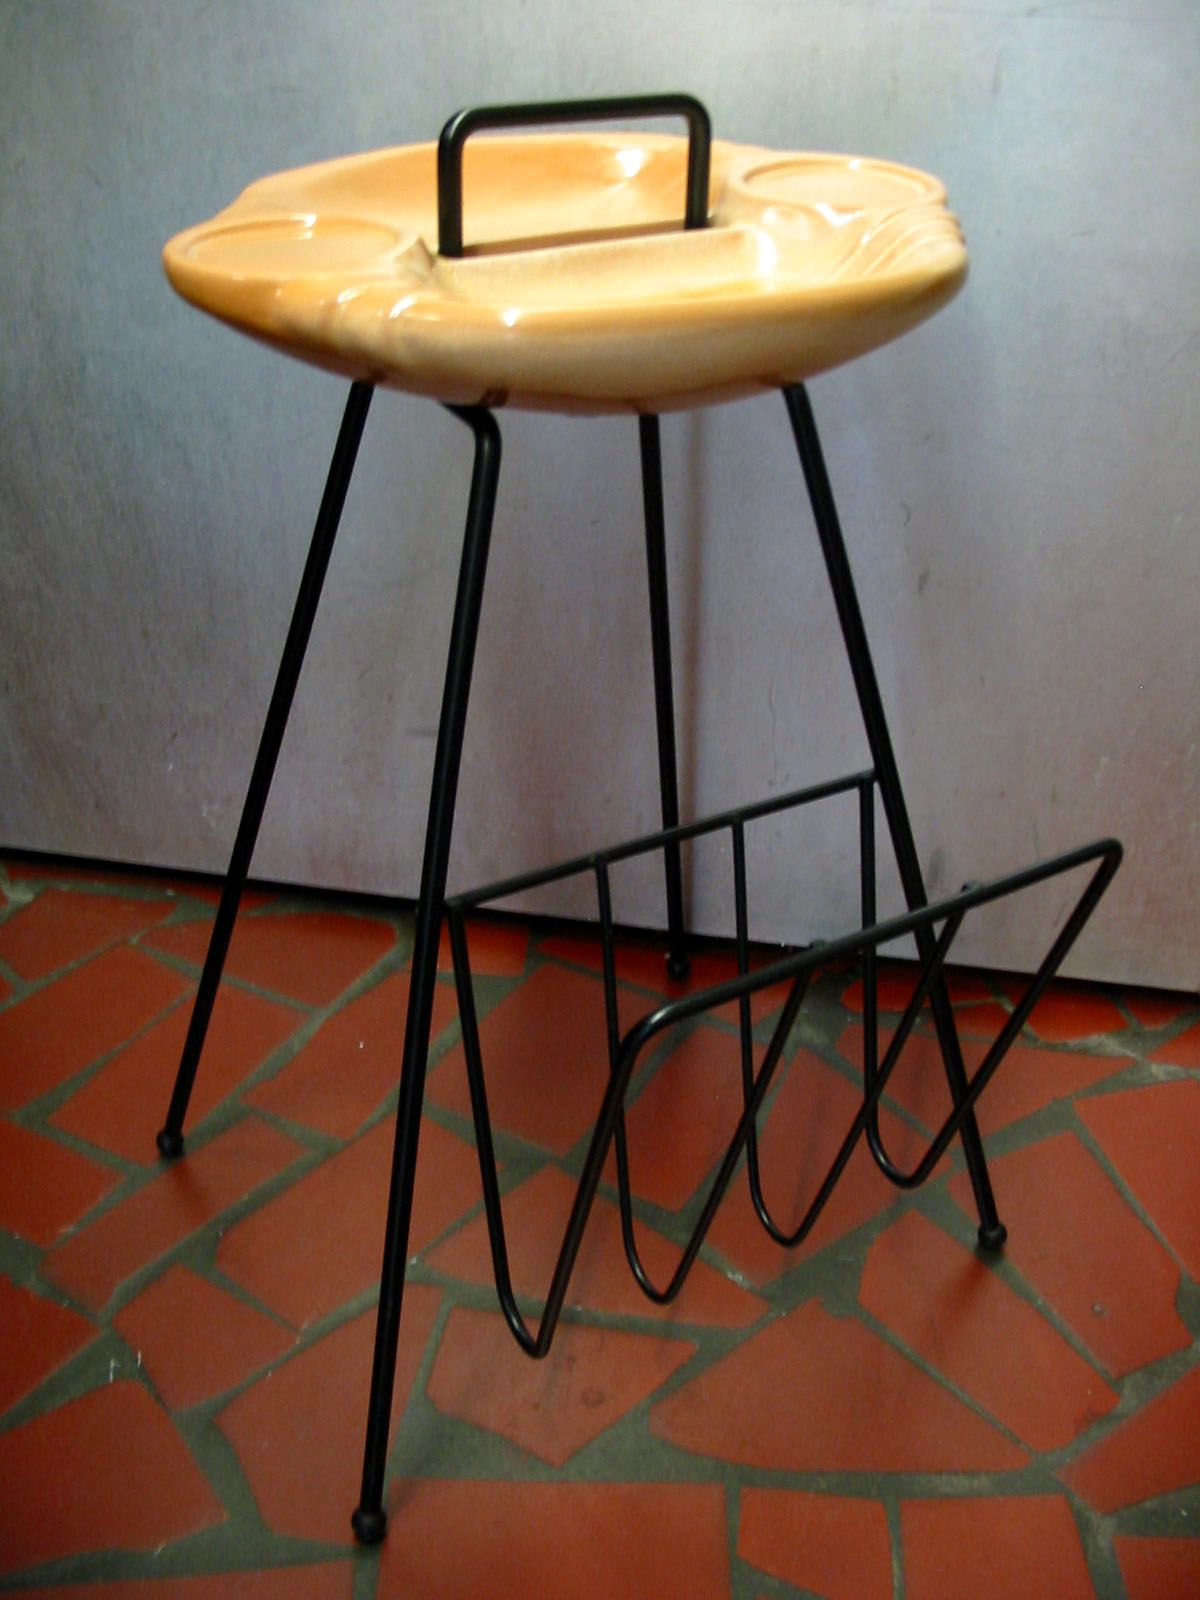 """Frankoma Pottery, mold No. 36M """"Serva-Tray"""" with magazine rack.  1955 Ceramic Award Winner - Hess Bros. National Contest for Versatility in Design and Use.  Desert Gold glaze, manufactured between 1955 and 1964 in Sapulpa, Oklahoma."""